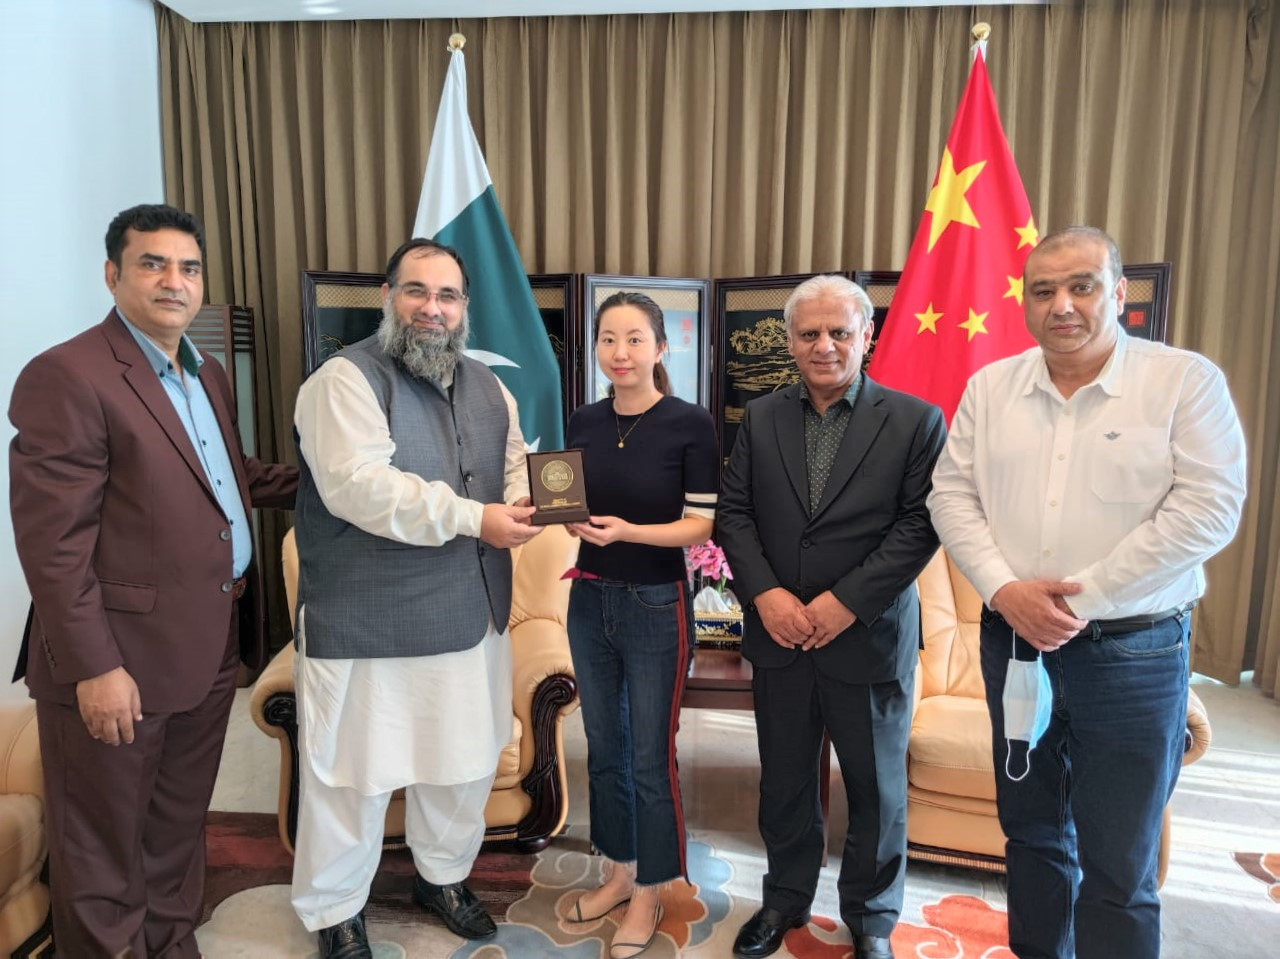 On September 07, 2021, A delegation of Sialkot Chamber of Commerce & Industry had a meeting with the Consul of China to Pakistan to discuss matters related to Visas. The Delegation was led by Mr. Khuram Aslam, Senior Vice President and Mr. Ansar Aziz Puri accompanied by Mr. Mohammad Sarwar and Mr. Mohammad Bilal Dar, SCCI Executive Committee Members.